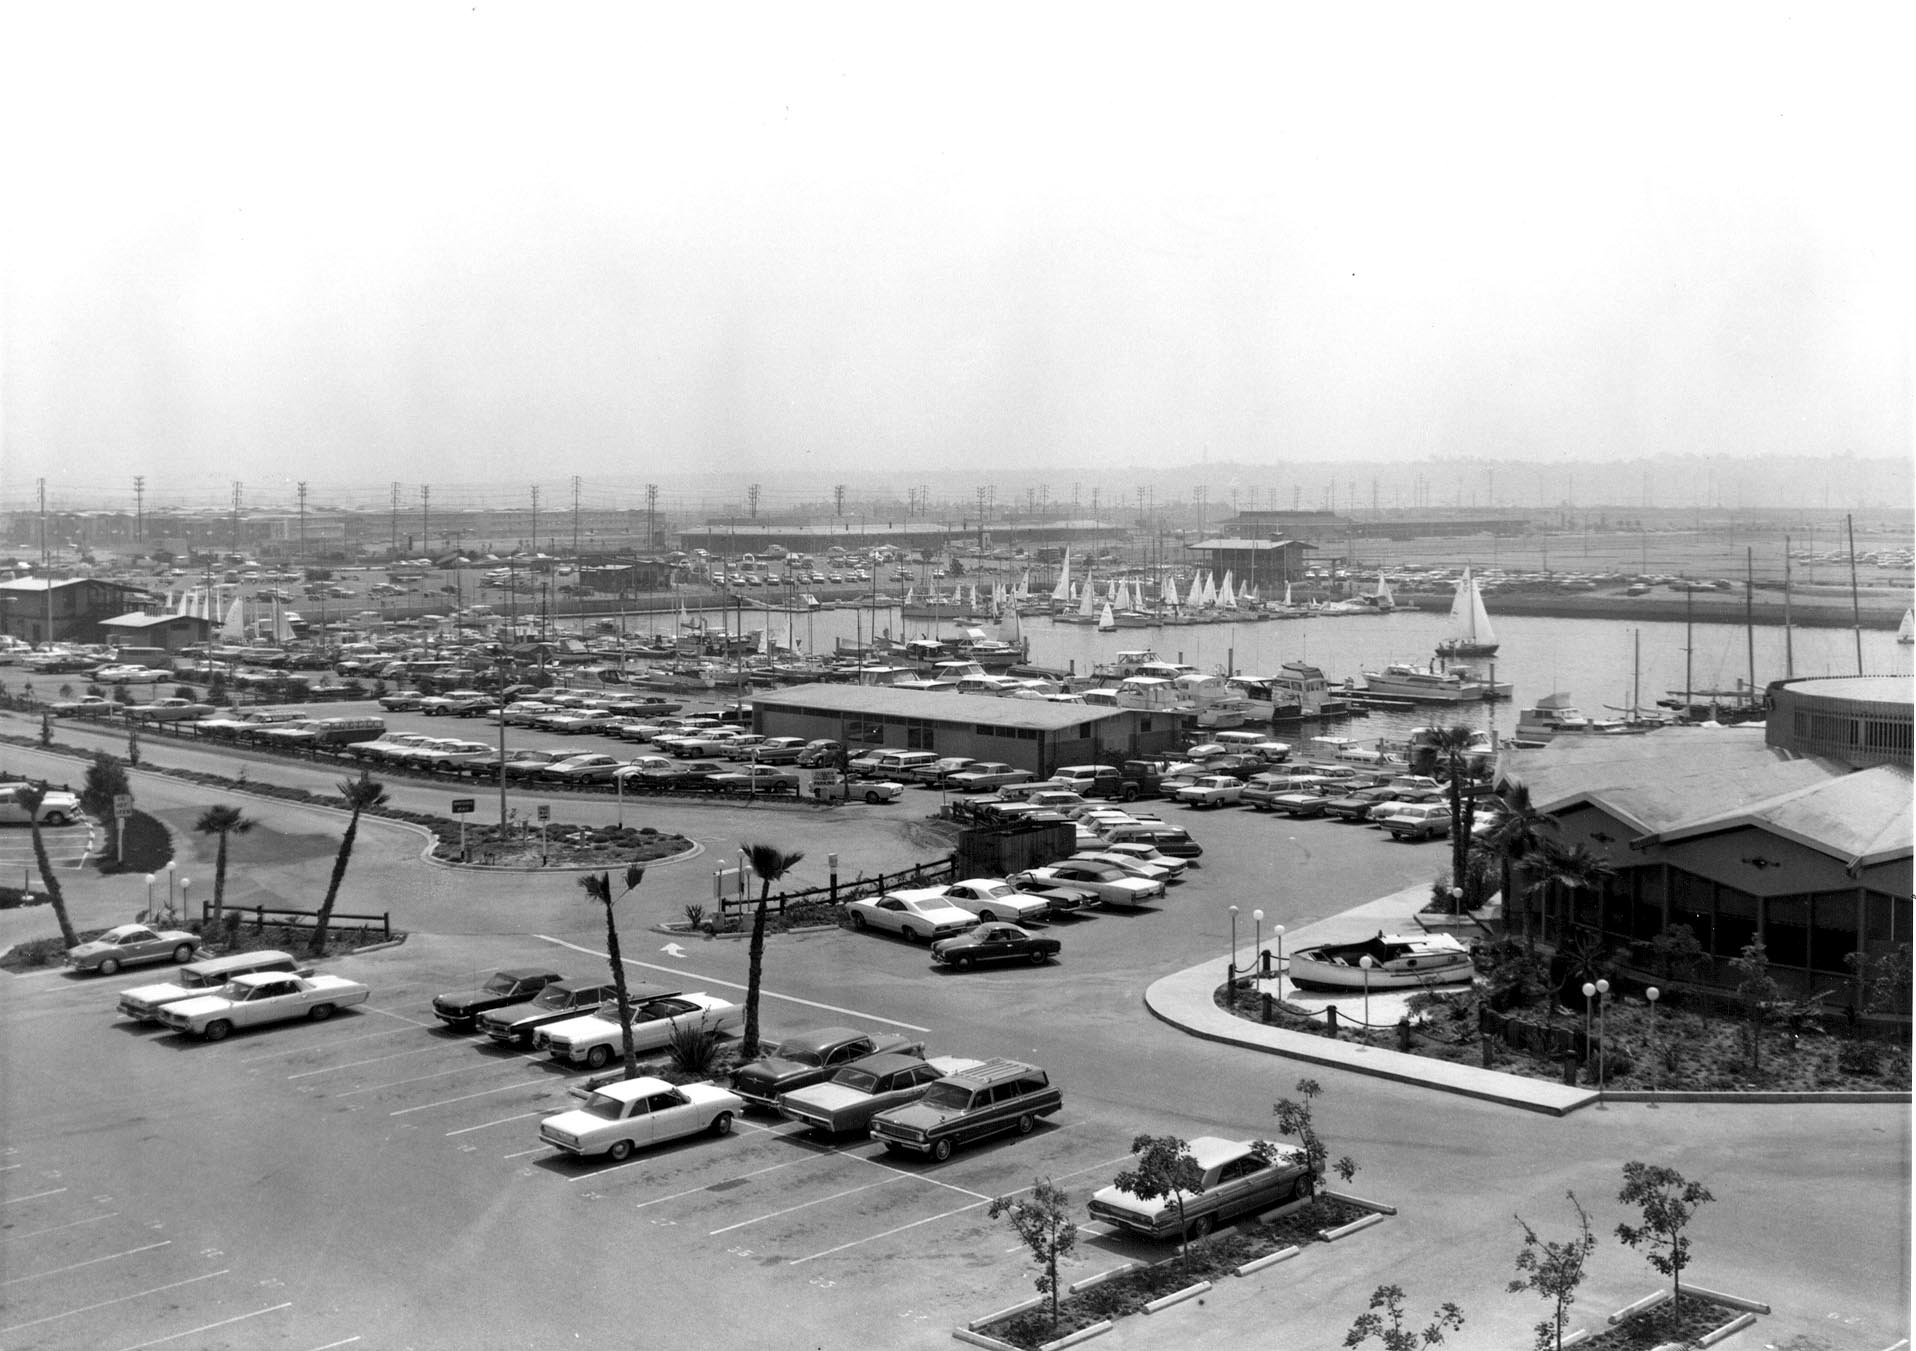 hm179bw-view-from-mdr-hotel-wjycsccycdon-the-beachcomber-1967